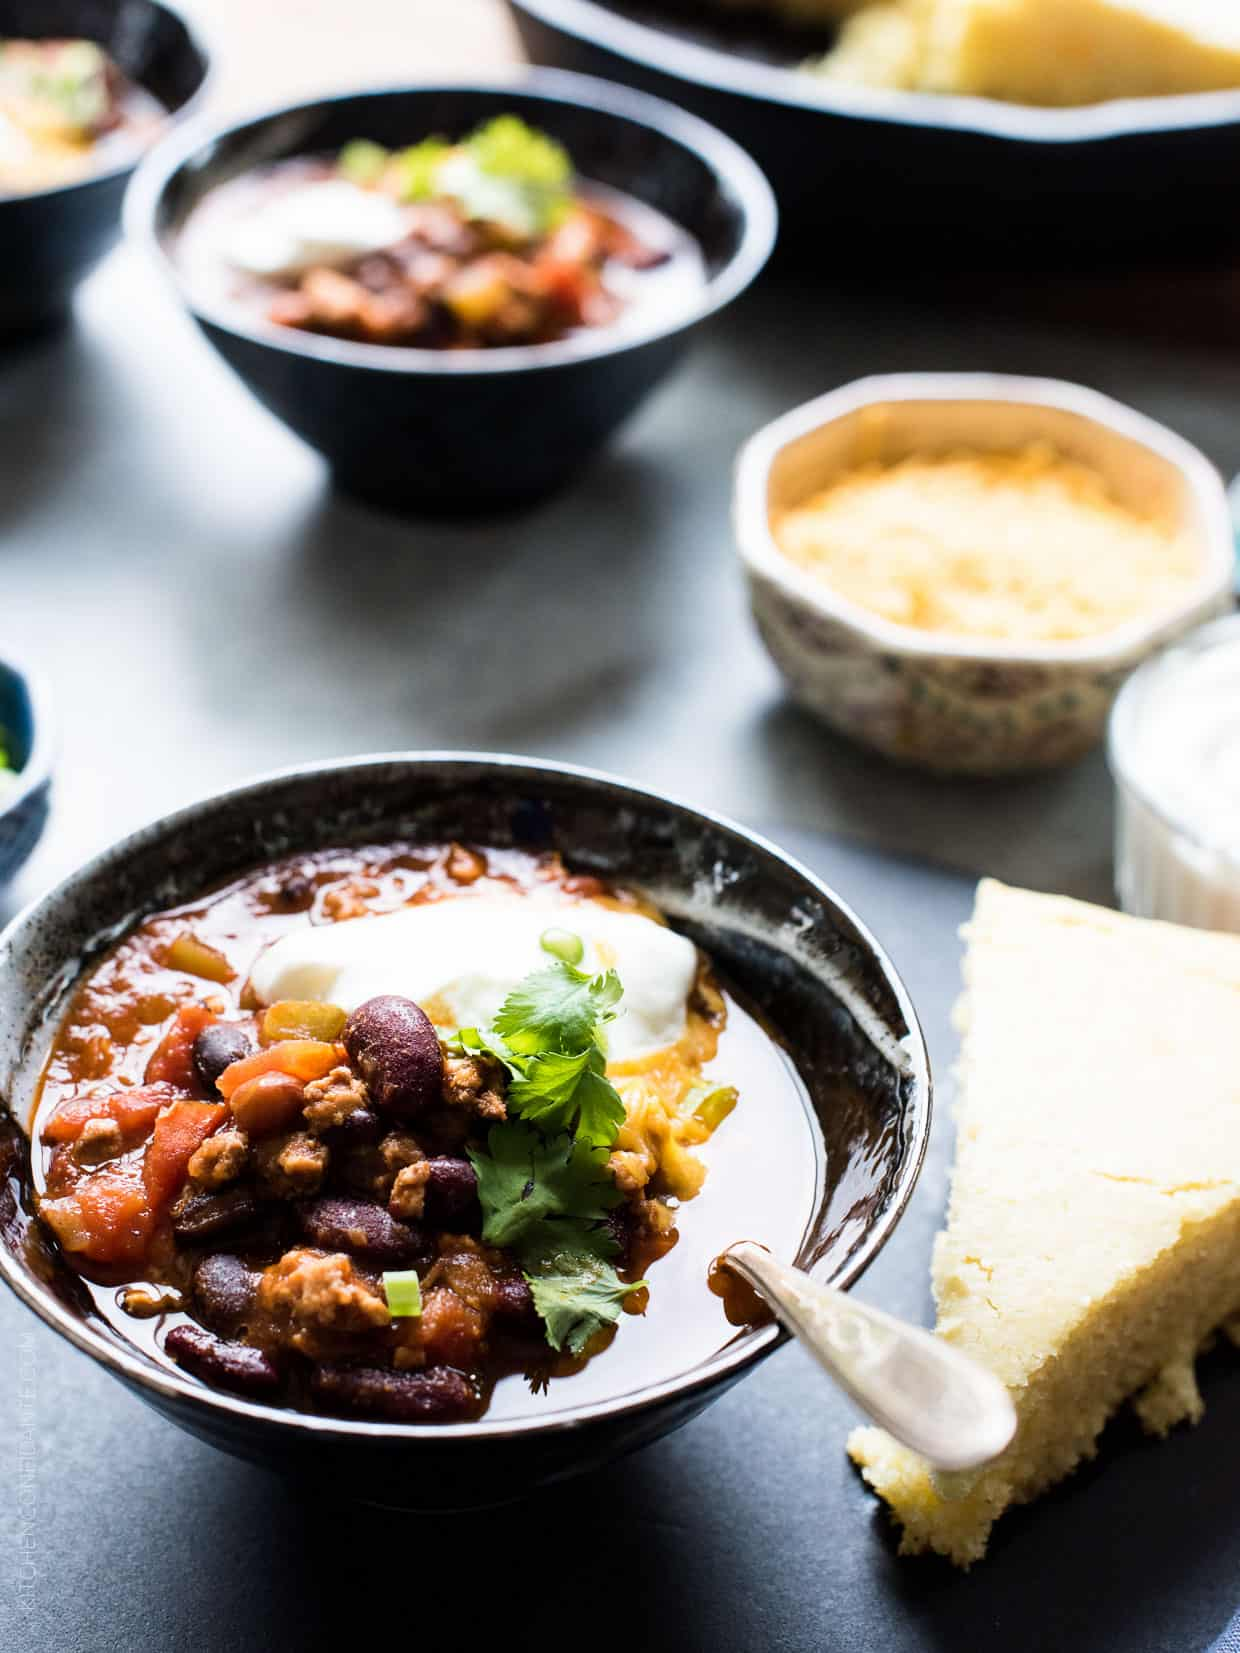 Classic Chili garnished with shredded cheese, sour cream, green onions and cilantro.